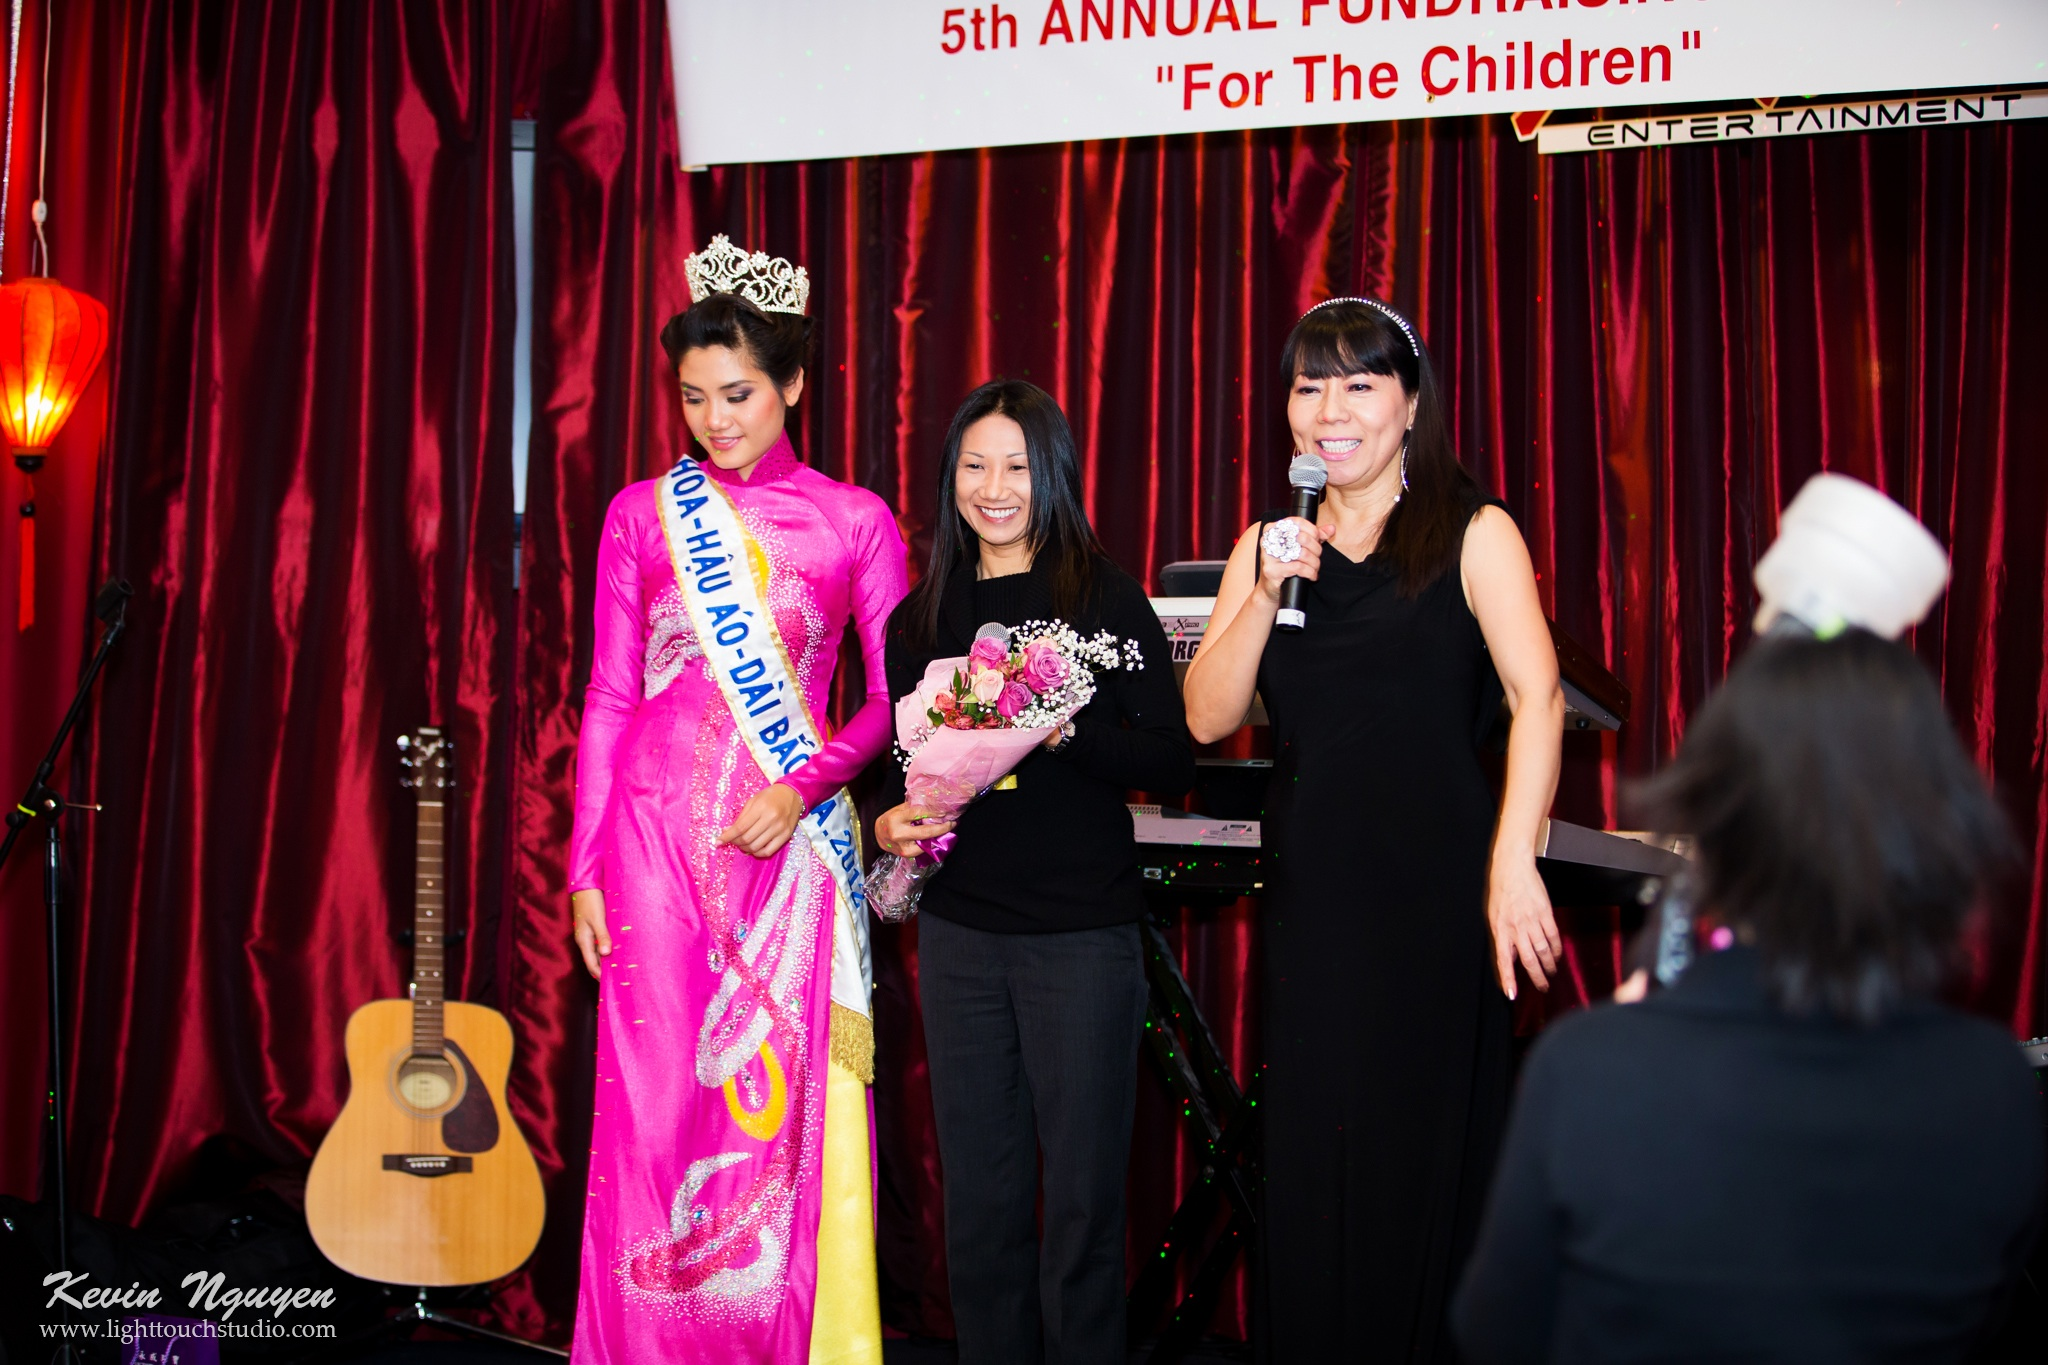 Charity Fundraiser 2012 - For the Children - Paloma, San Jose - Image 061